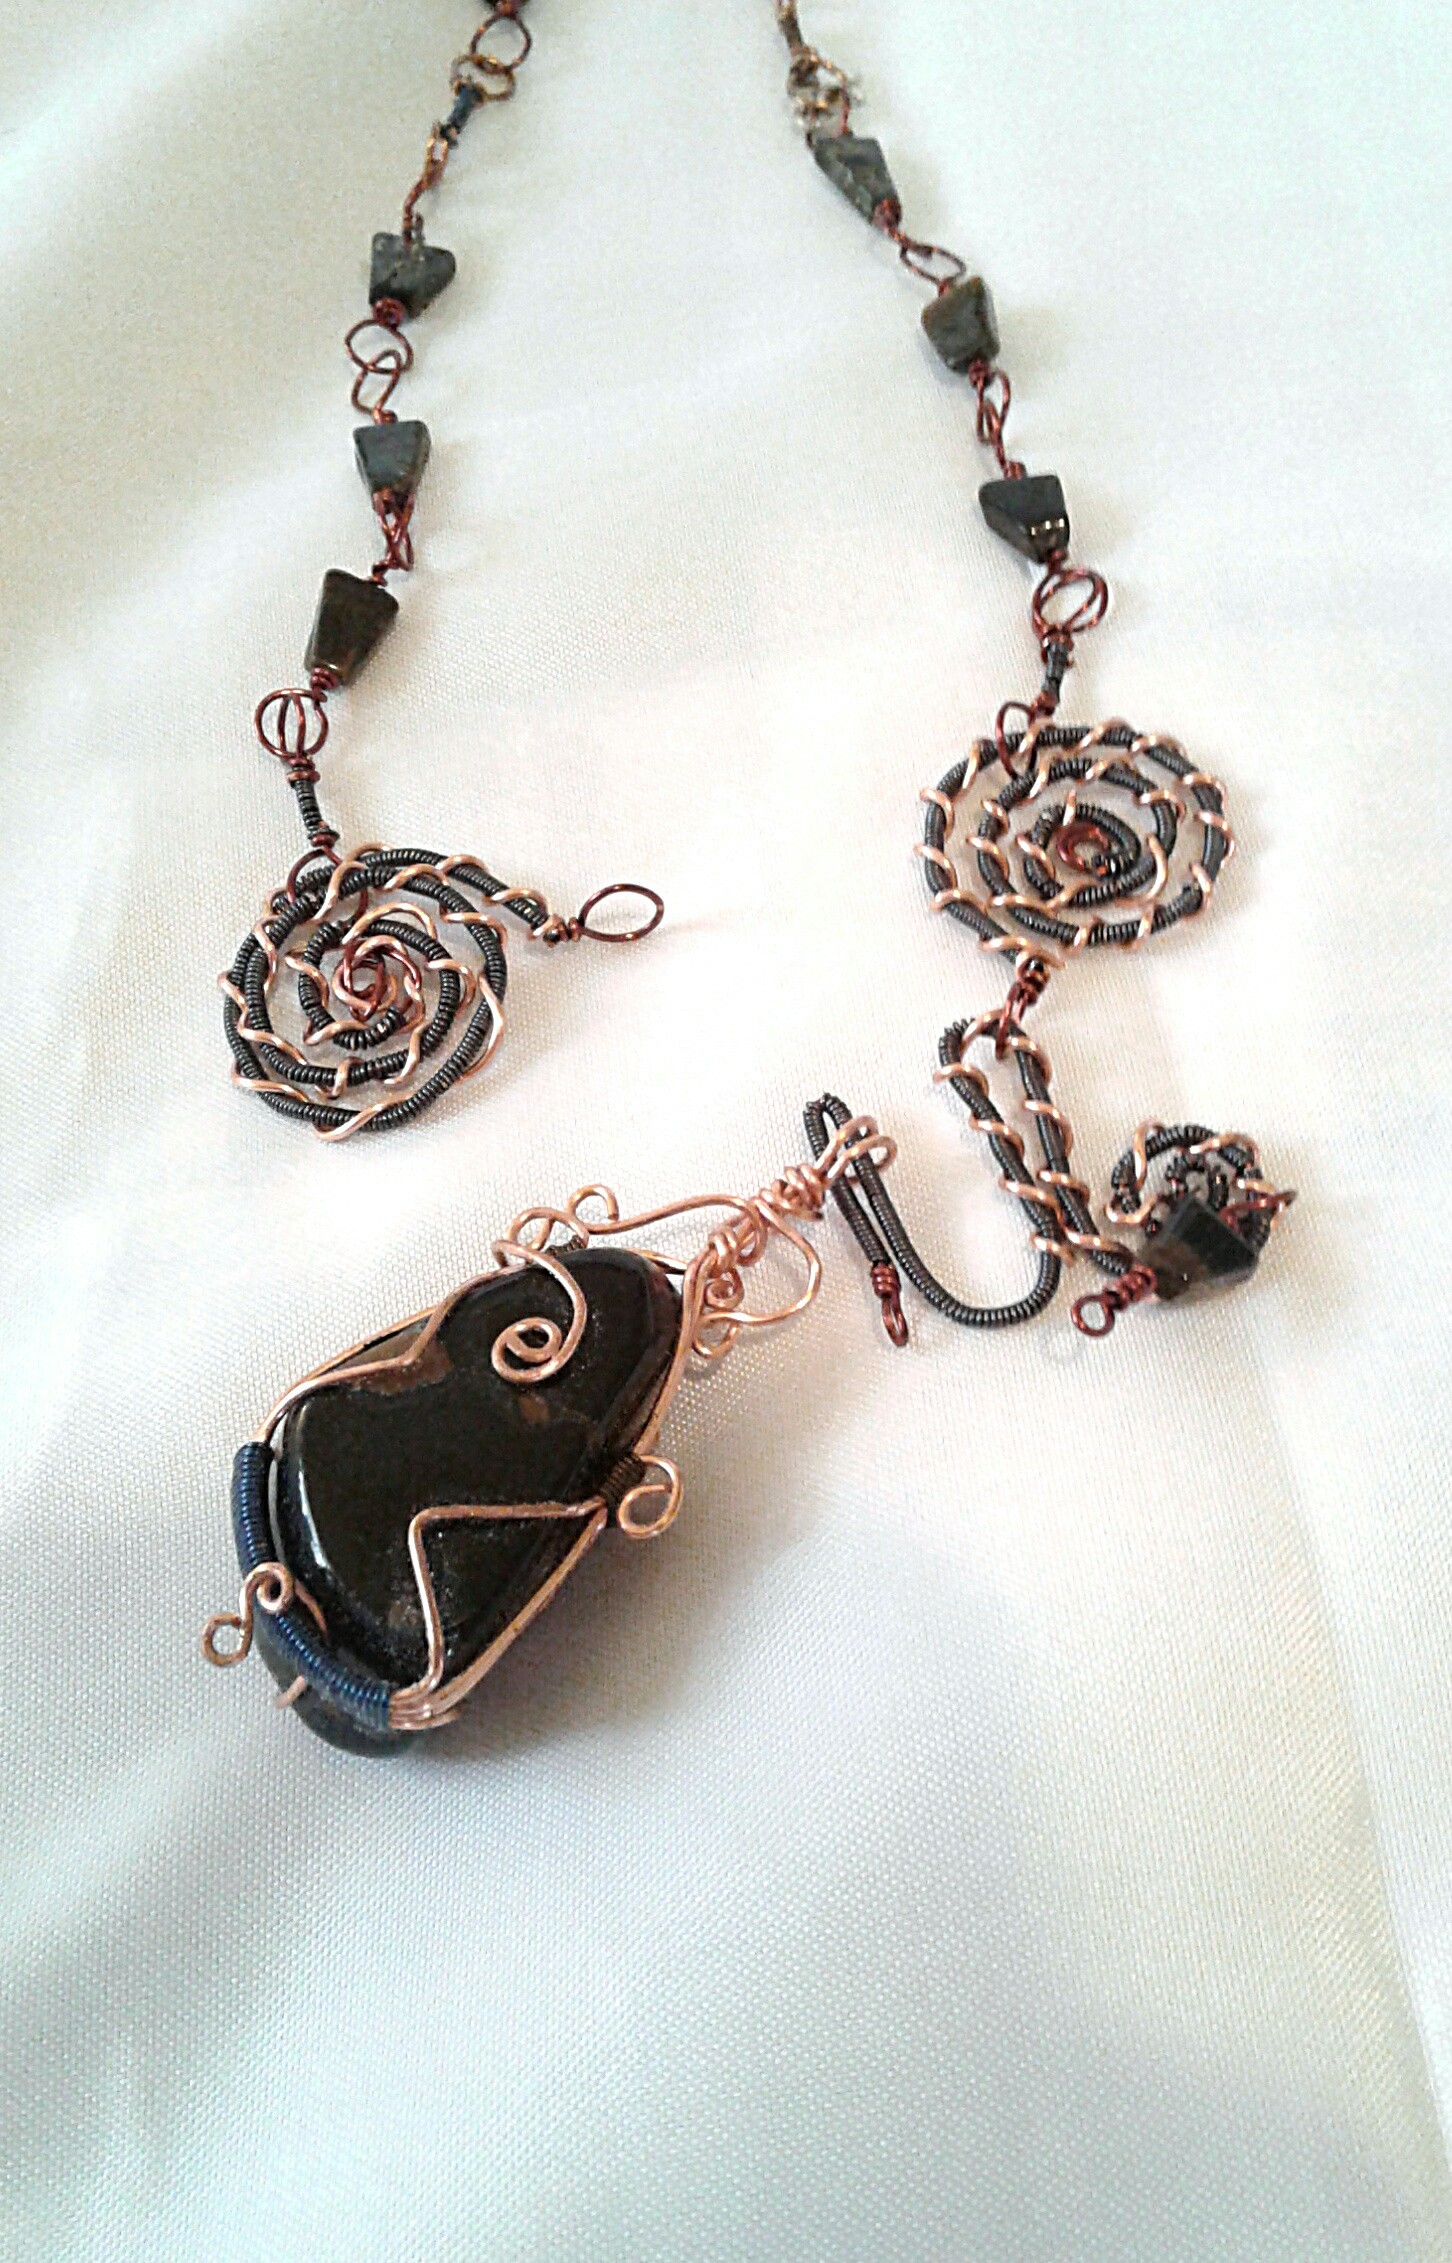 Sliding removeable pendant on opened clasp.